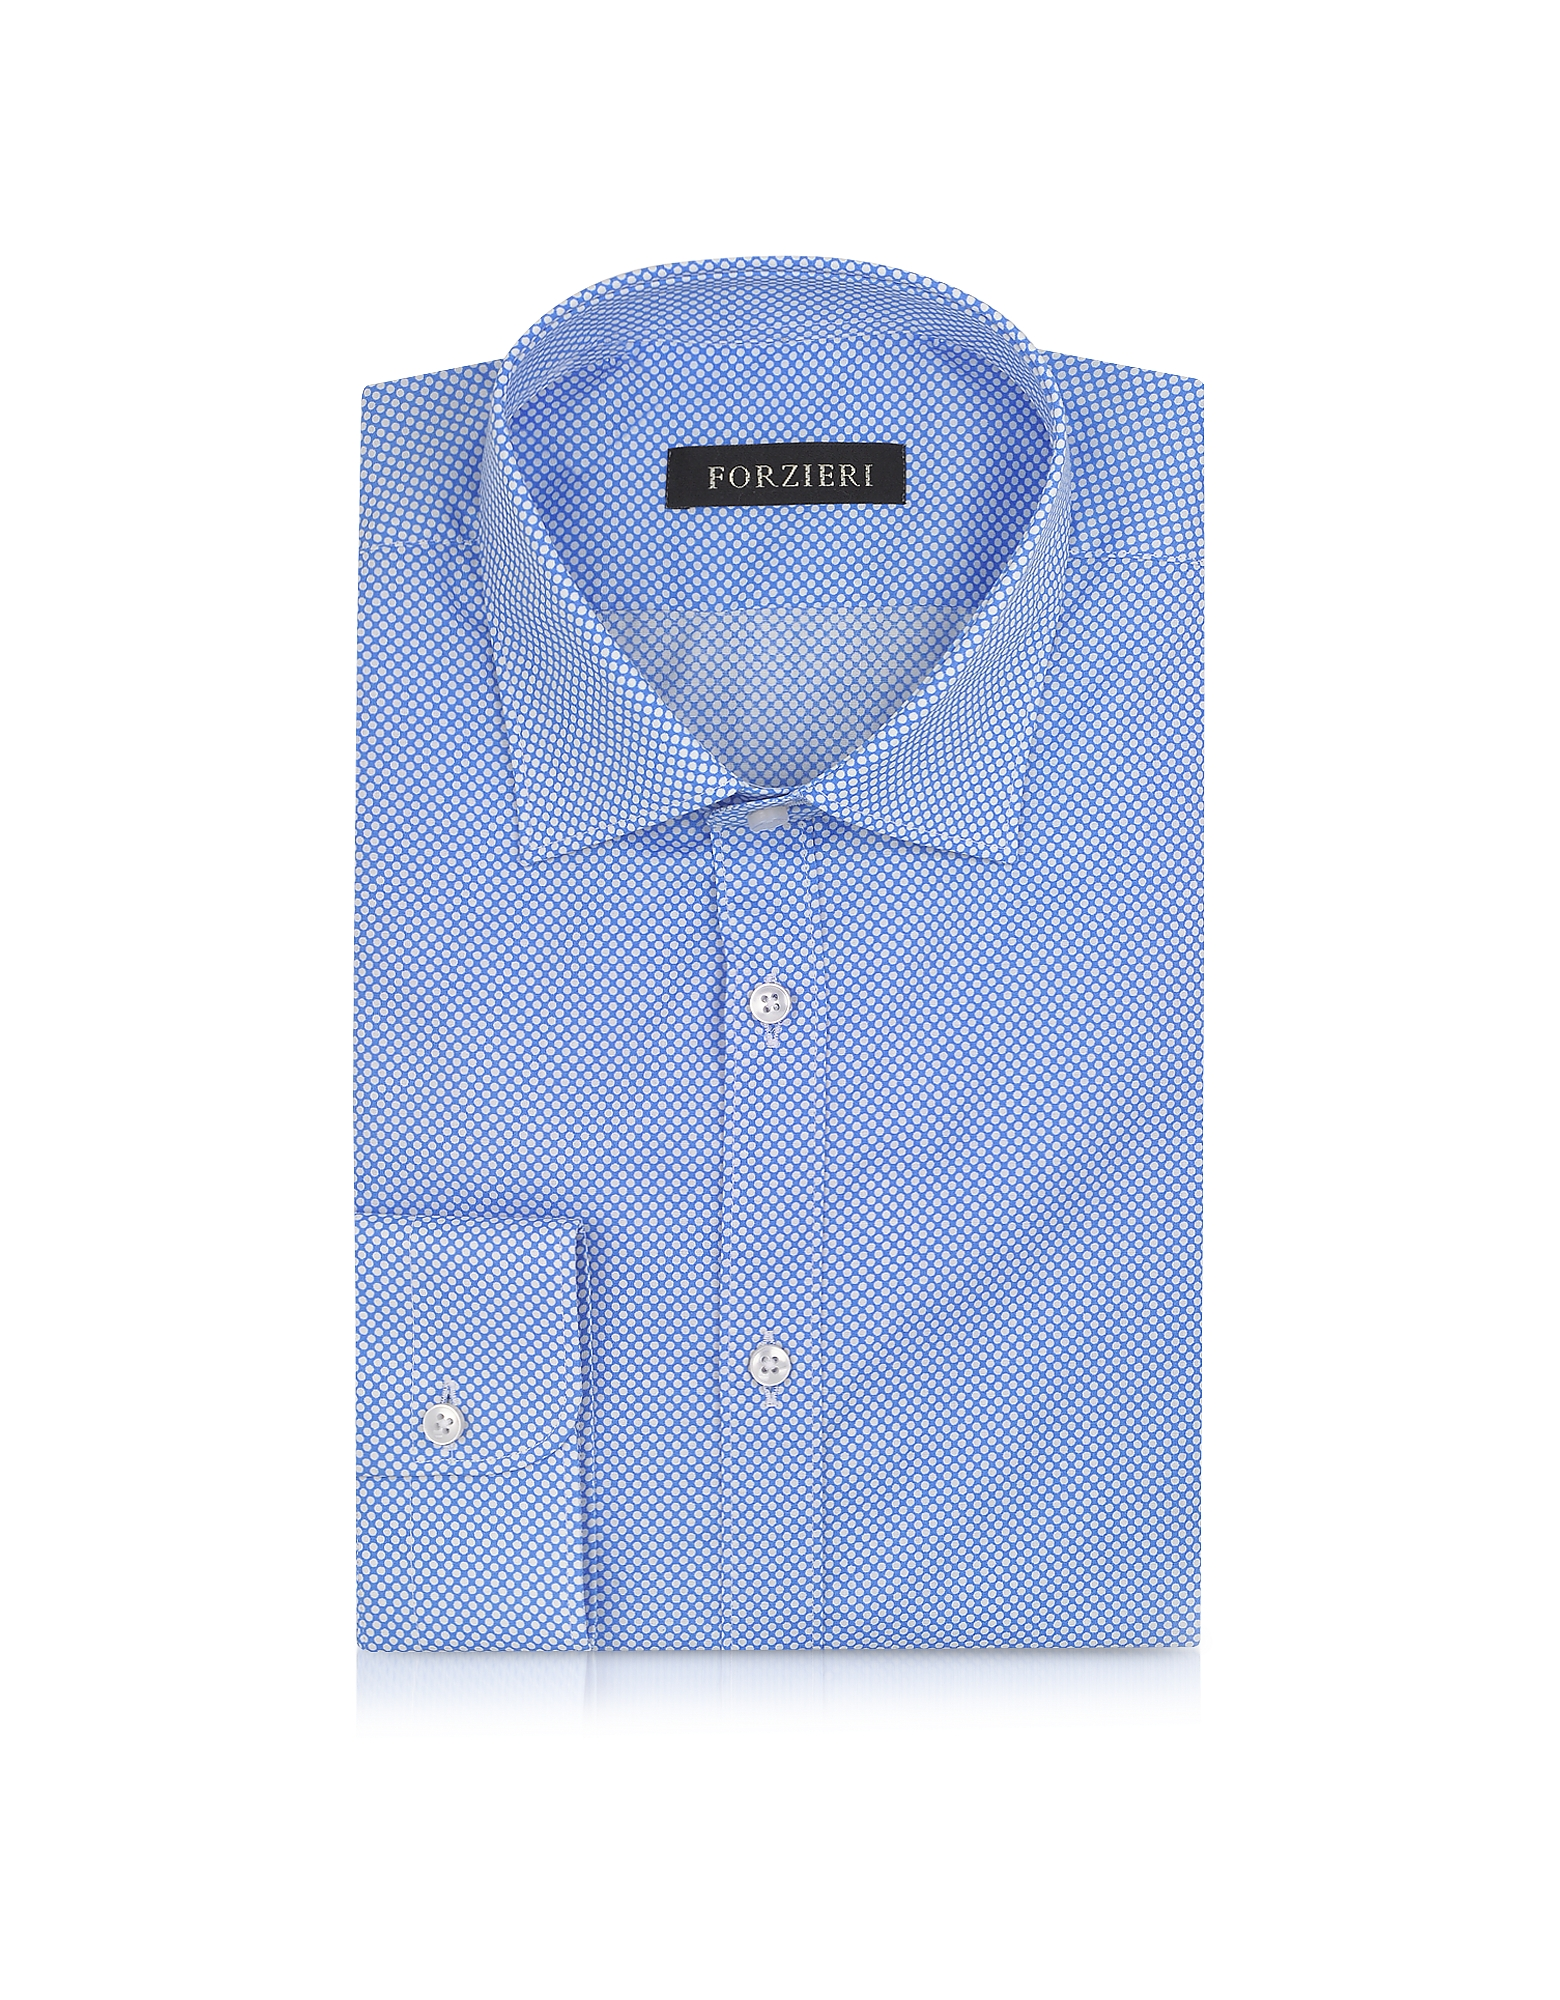 Light Blue and White Polkadot Cotton Slim Fit Shirt от Forzieri.com INT